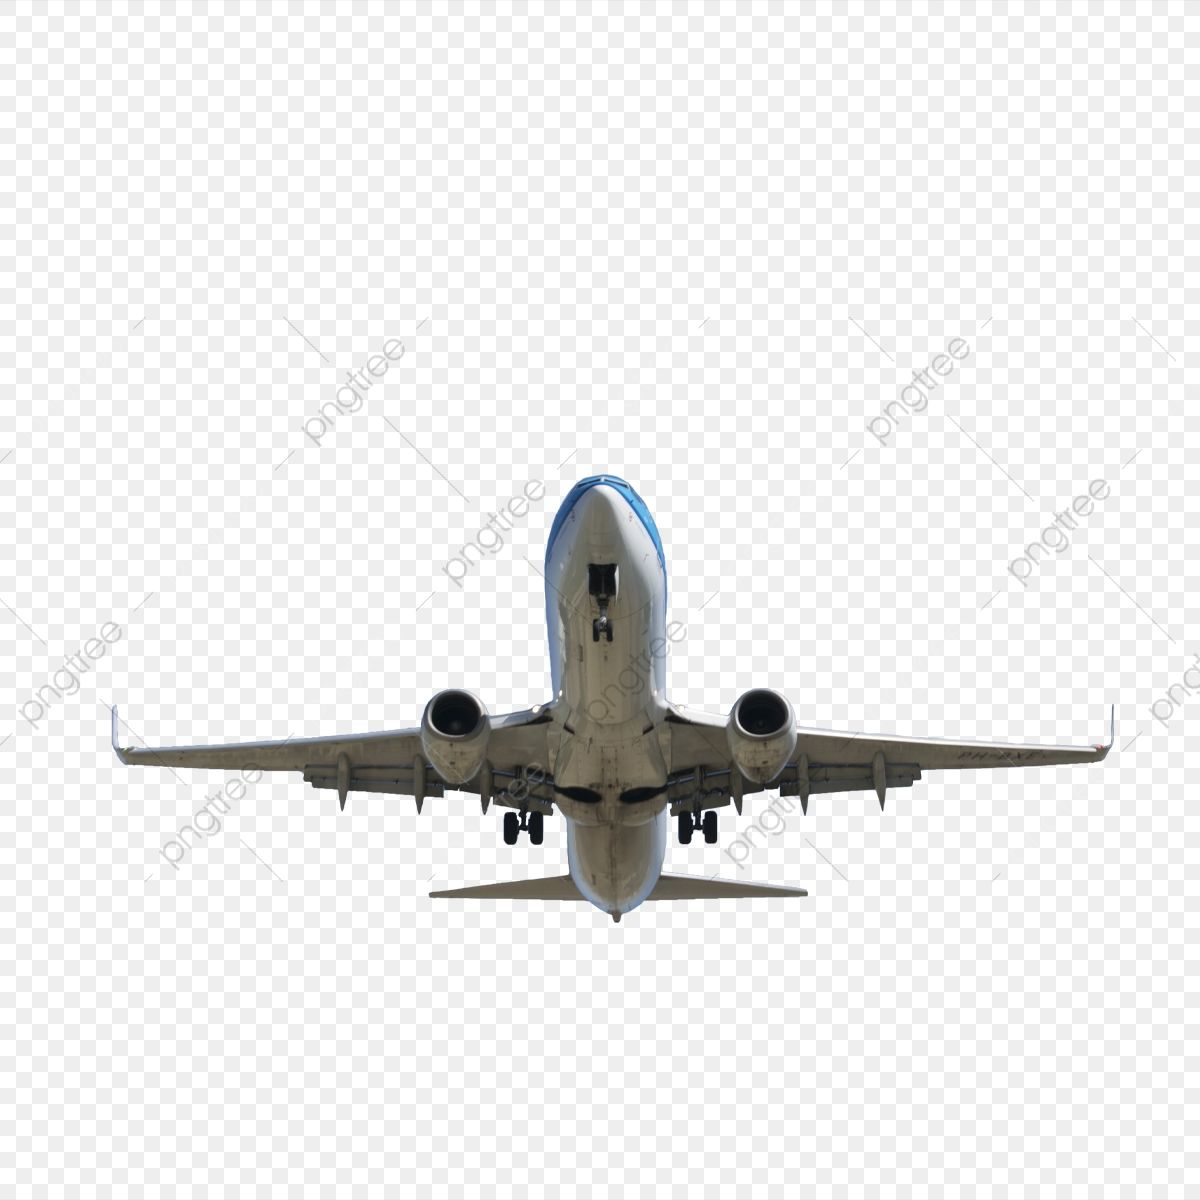 Airplane Landing Png Airplane Landing Png Transparent Clipart Image And Psd File For Free Download In 2020 Airplane Landing Airplane Clip Art